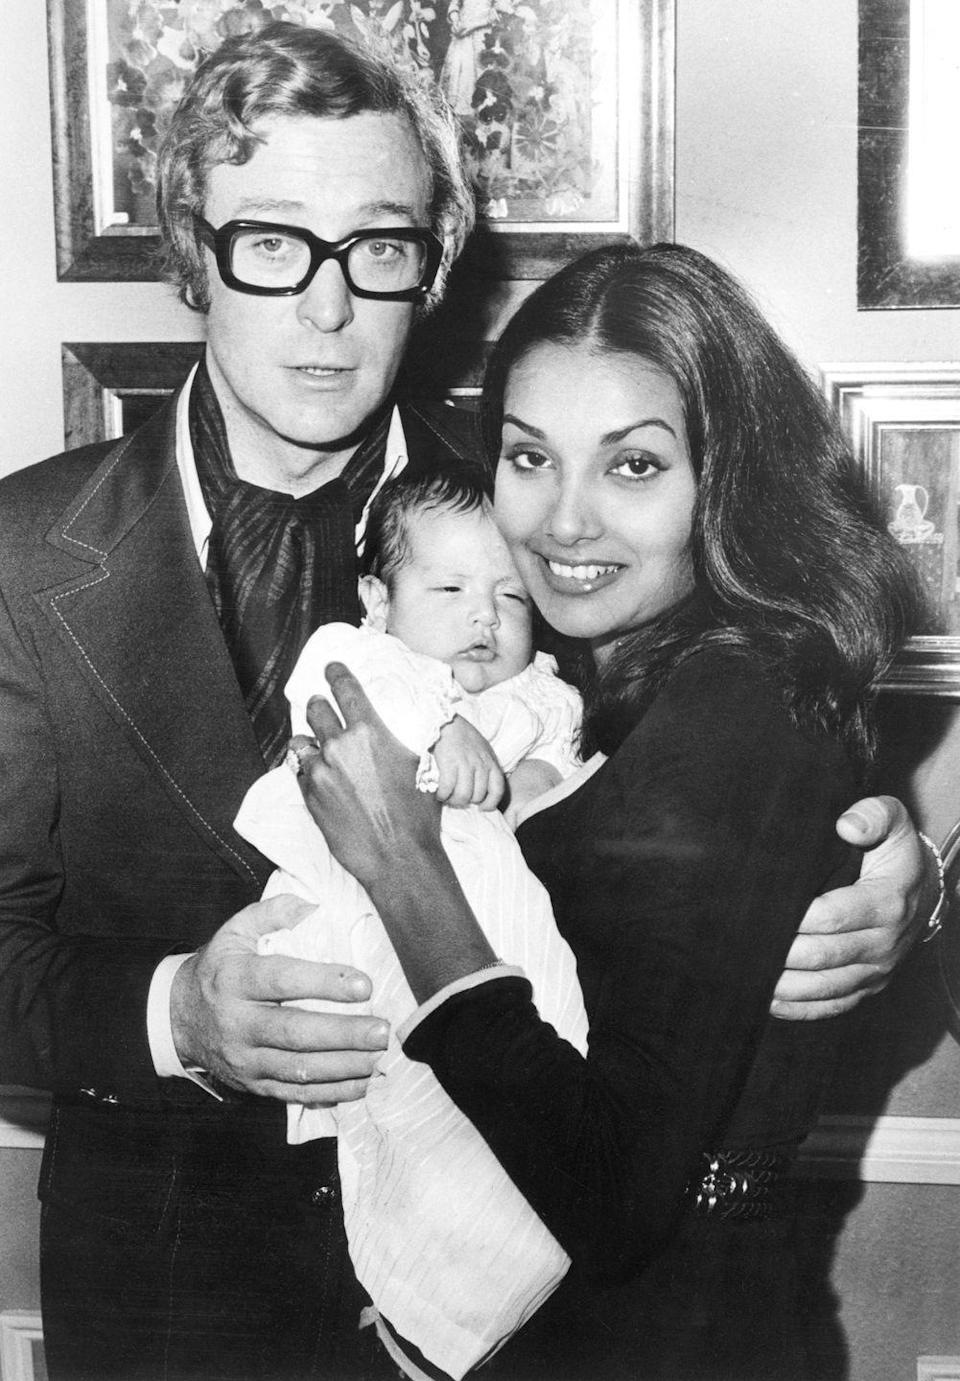 <p>Michael Caine poses with his wife, Shakira, and their newborn daughter, Natasha, at their London home in 1972. </p>